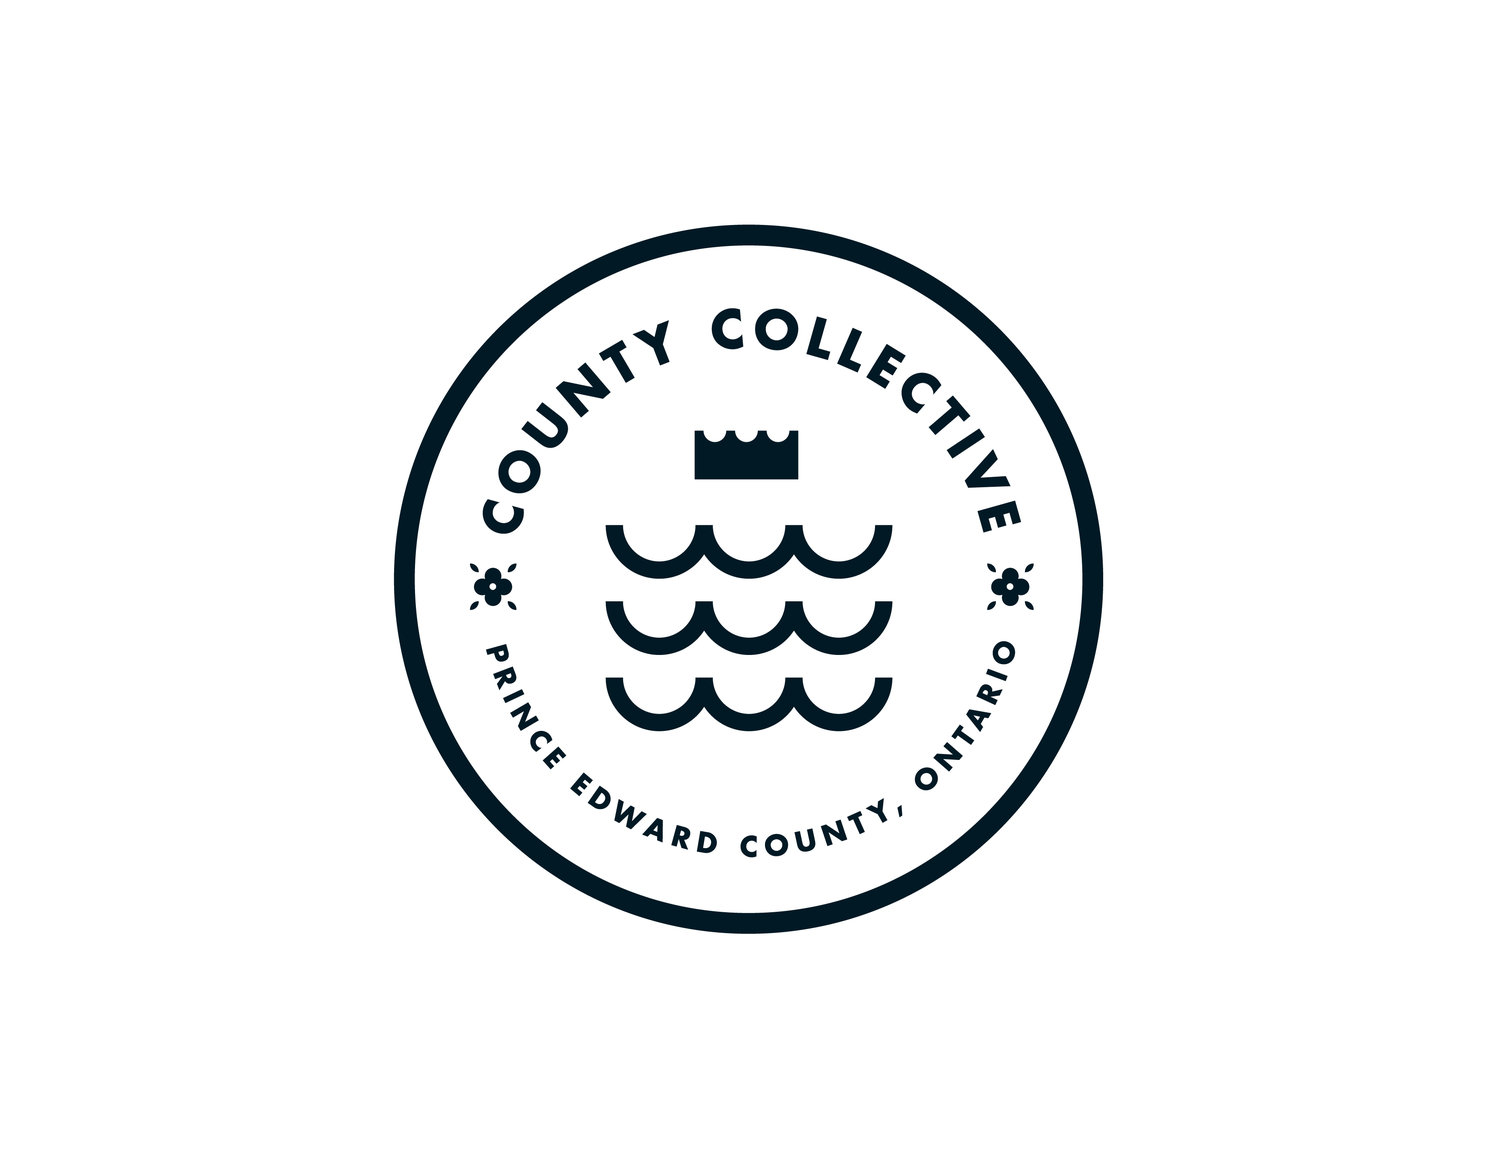 COUNTY COLLECTIVE